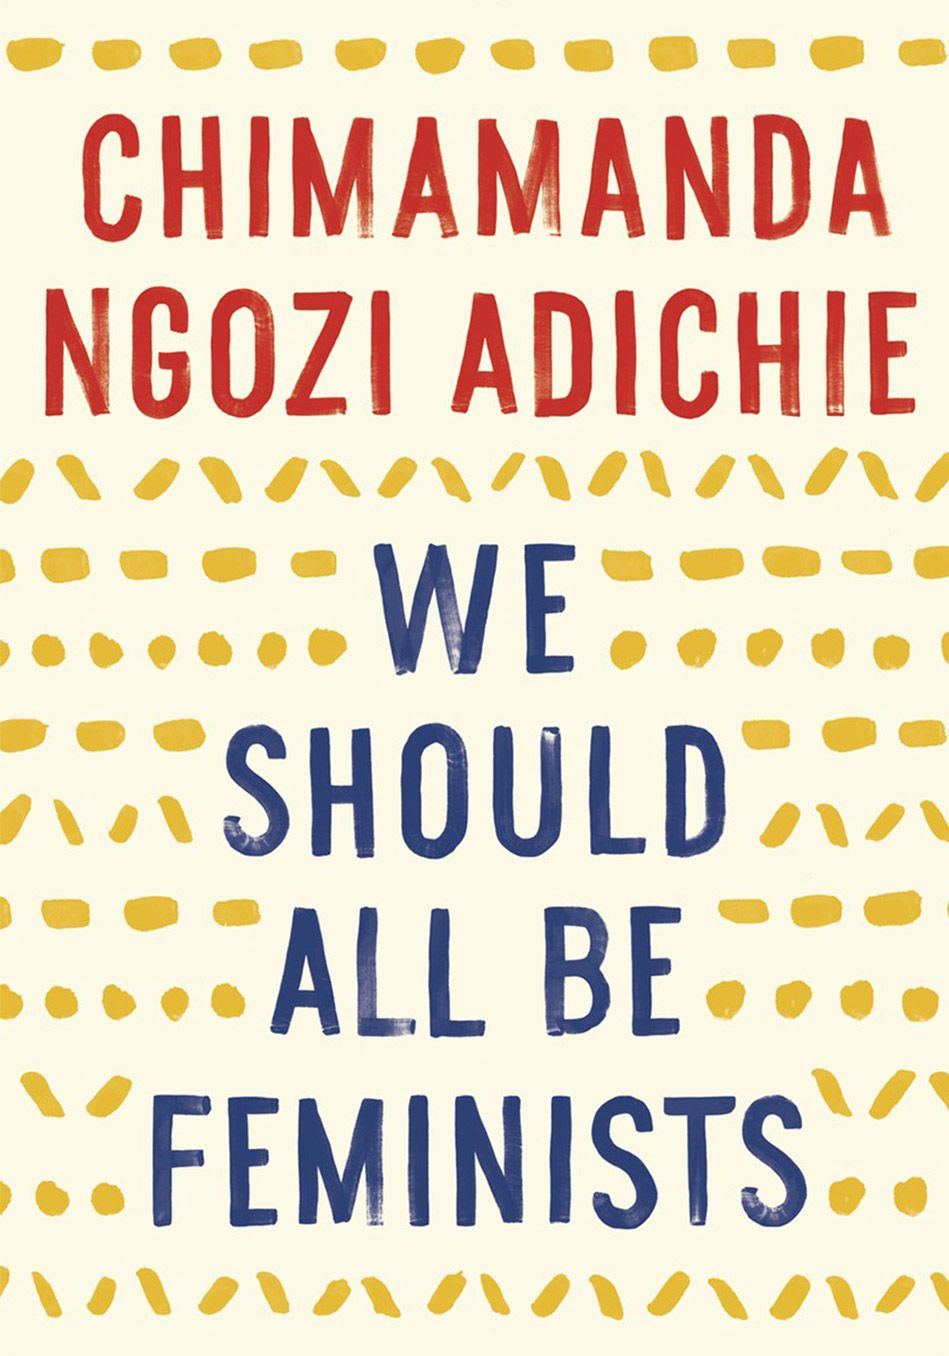 We should all be feminists by chimamanda ngozi adichie short girlboss reads we should all be feminists by chimamanda ngozi adichie short single essay about the value of feminism and her experiences with people fandeluxe Image collections